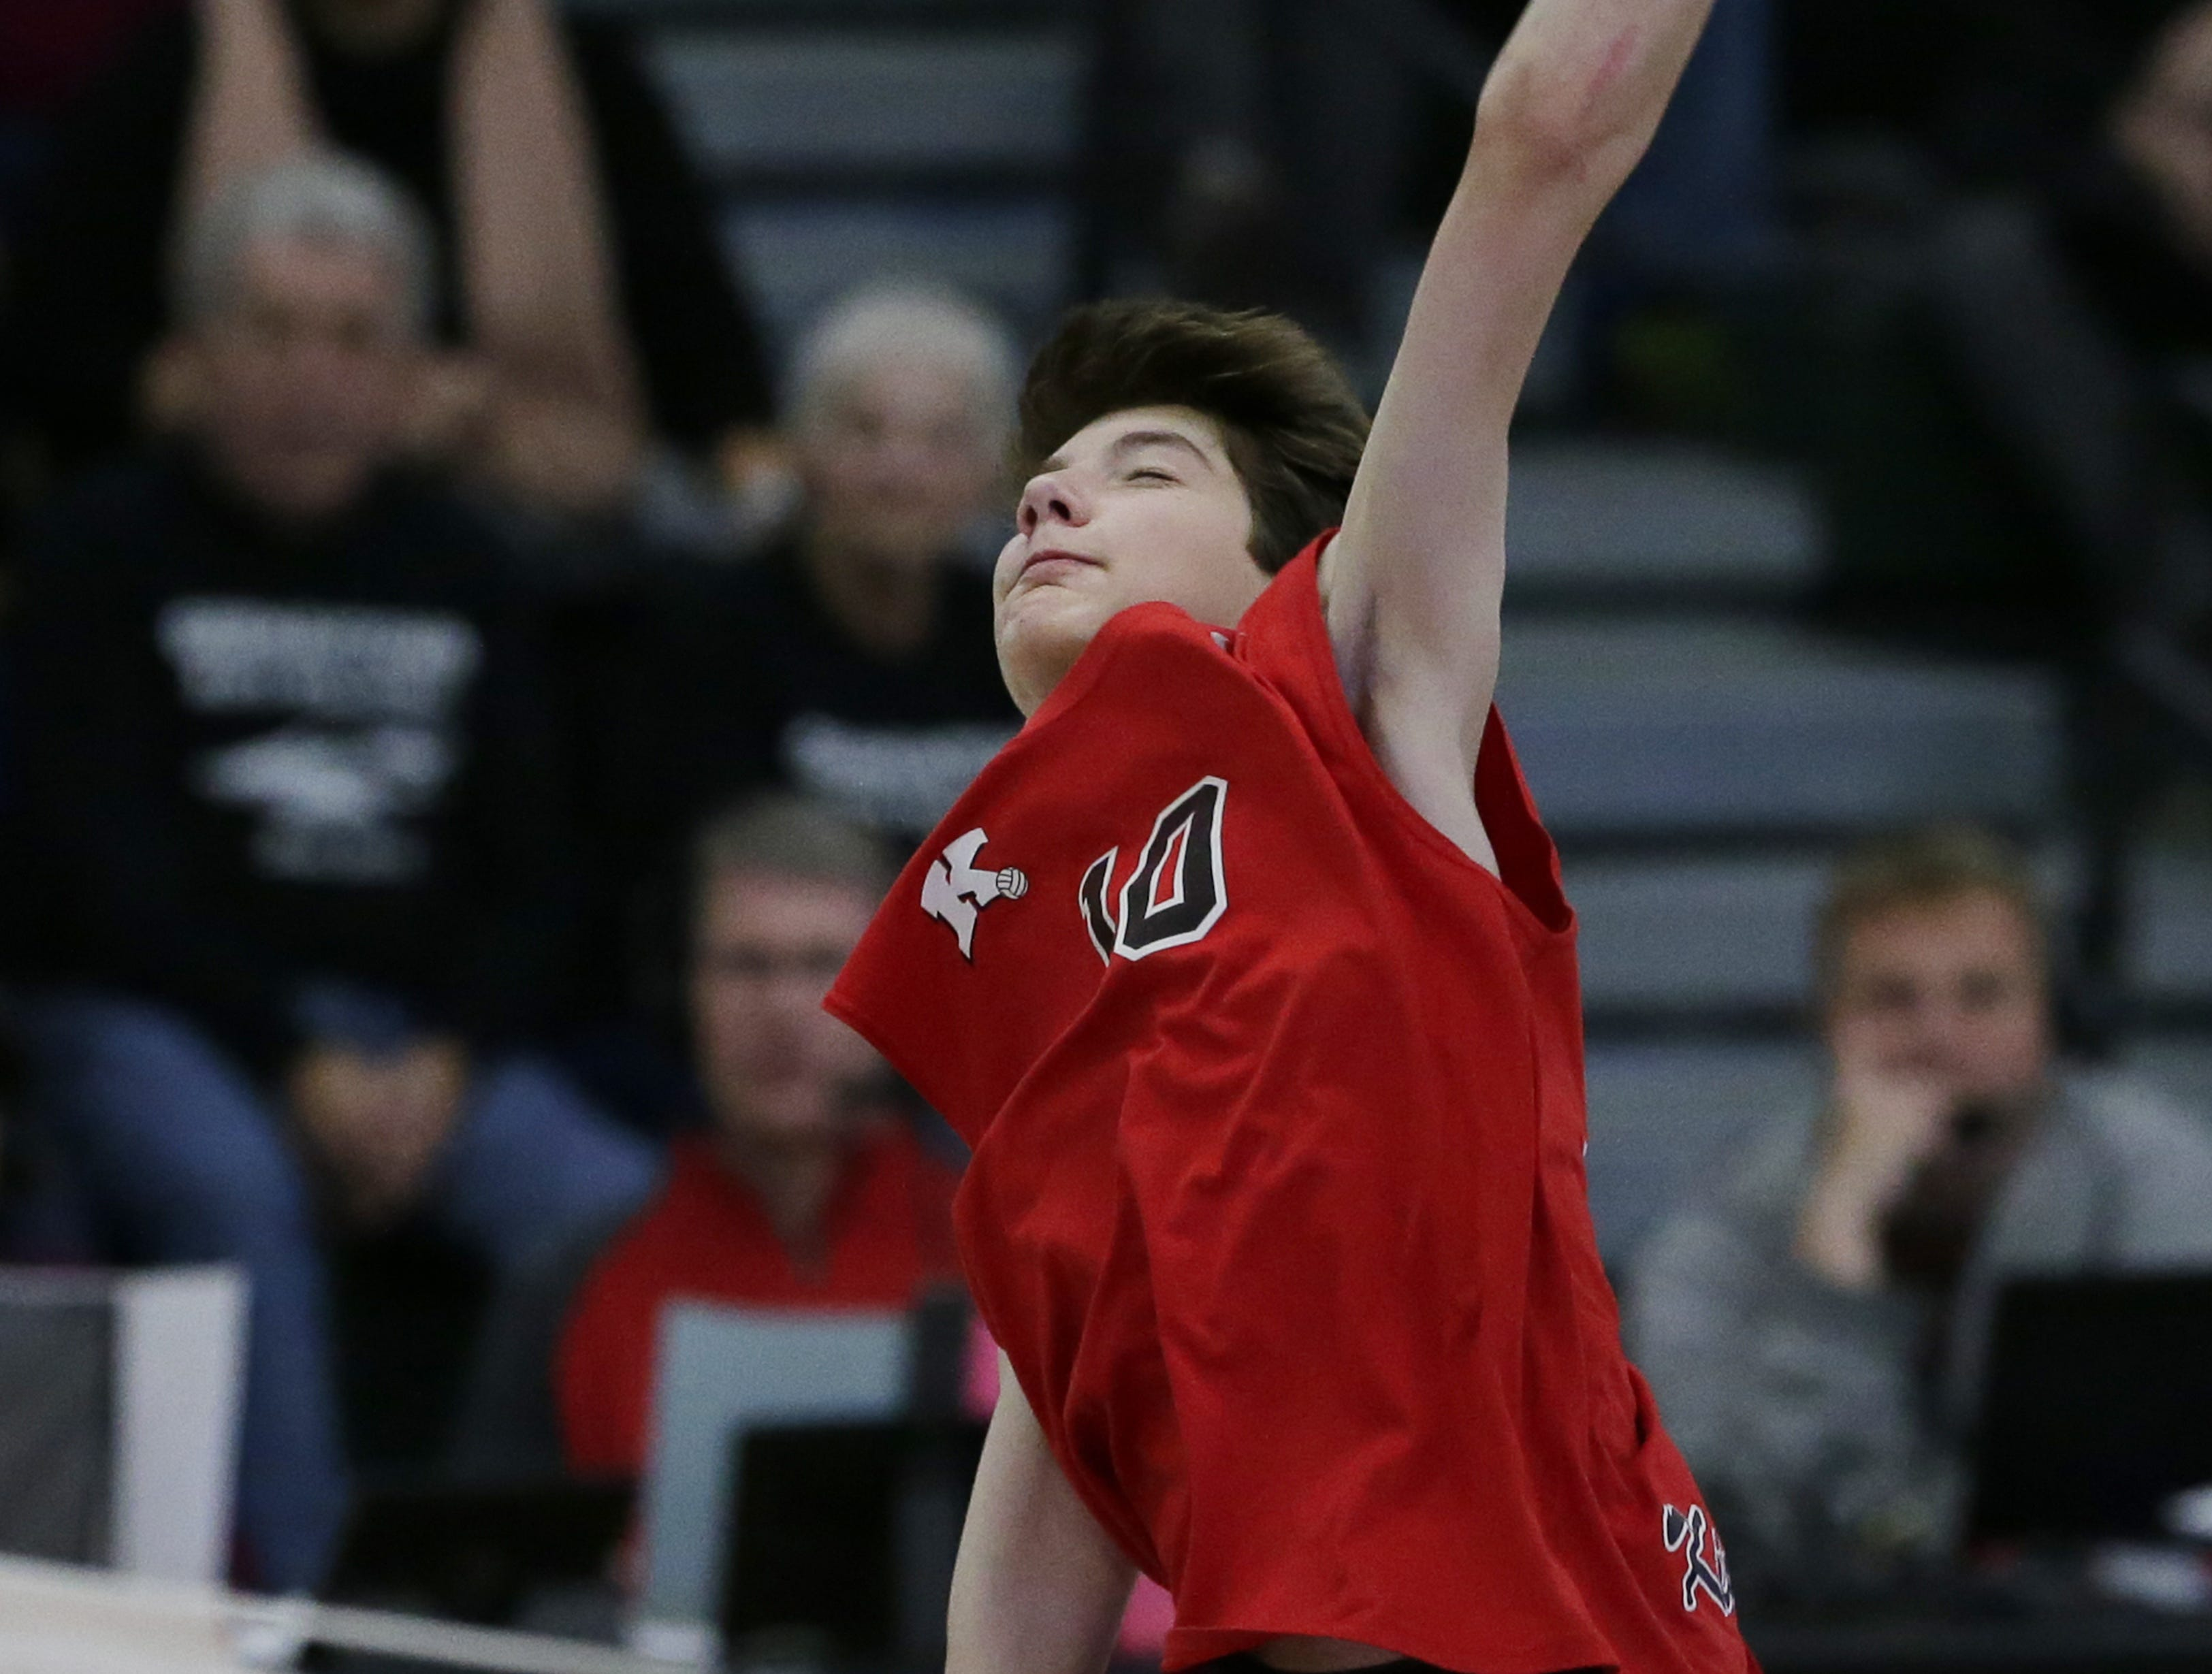 Kimberly's Landon Krause goes up for a spike during their game.  Kimberly Papermakers played Germantown Warhawks in Division 1 WIAA State Boys Volleyball Championship, Saturday, November 10, 2018 at Wisconsin Lutheran College in Milwaukee, Wis. Joe Sienkiewicz/USA Today NETWORK-Wisconsin